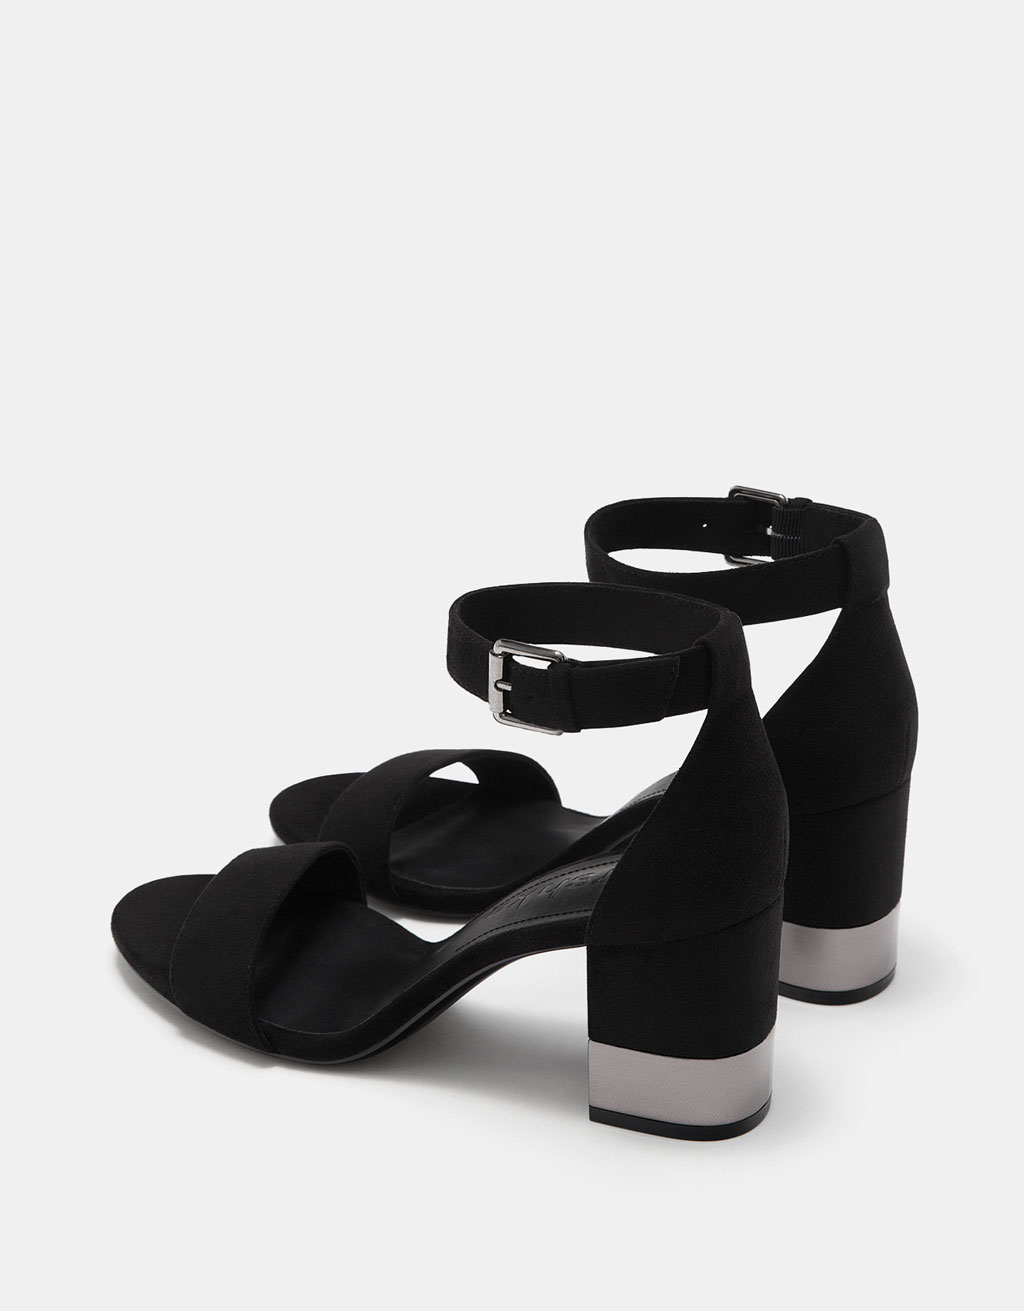 Slides with ankle strap and metallic mid heels